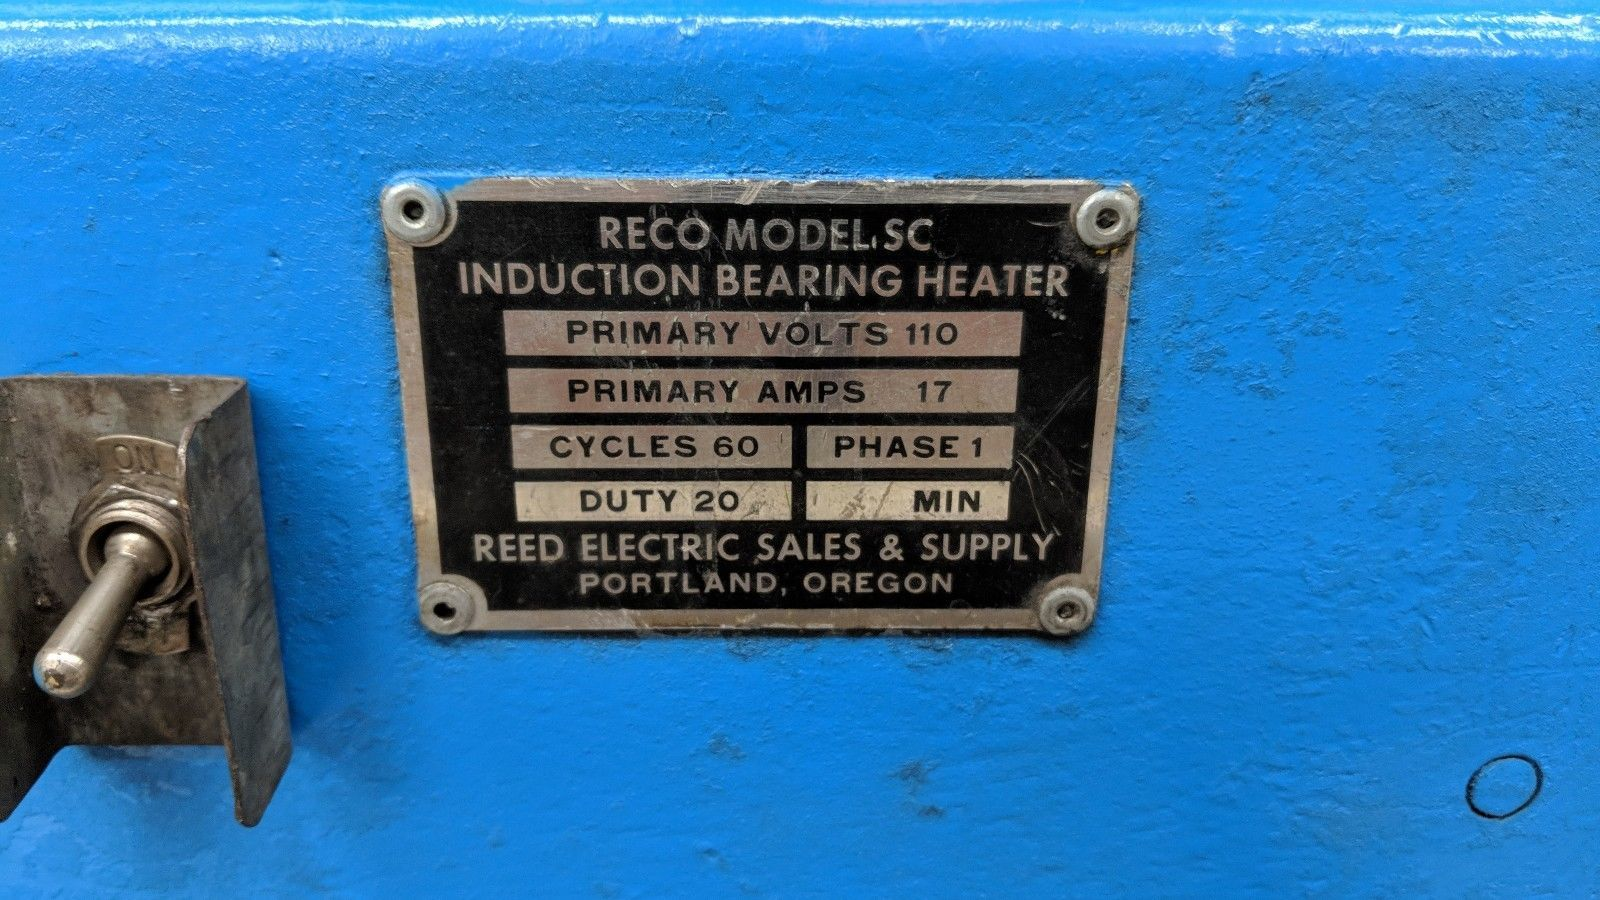 Reco Model SC Induction Bearing Heater expander 115vac #2